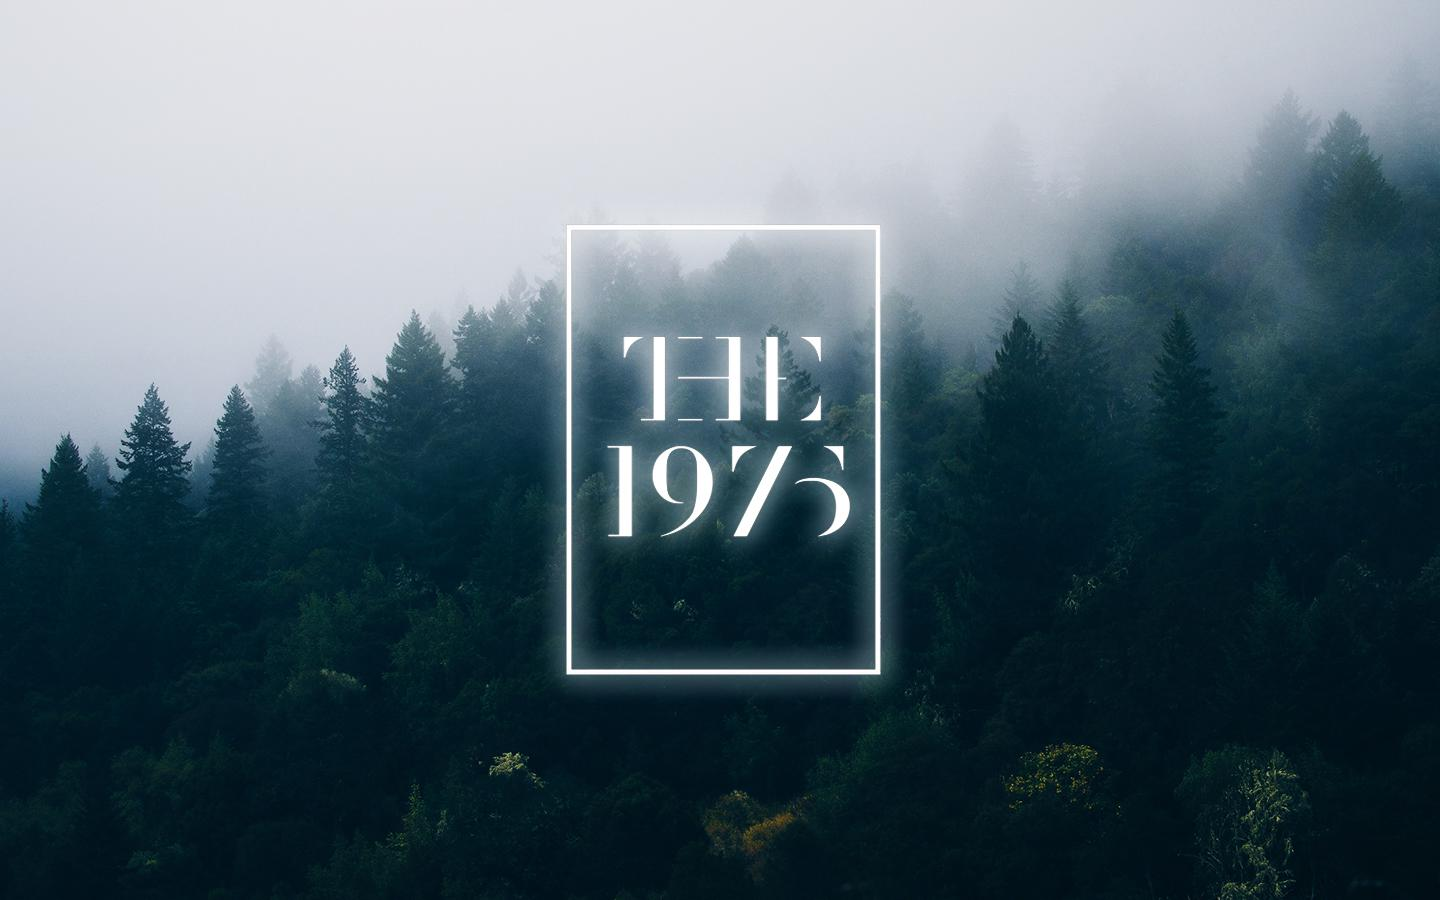 Bringing Out the Vintage Look With the 1975 Wallpaper Picture design